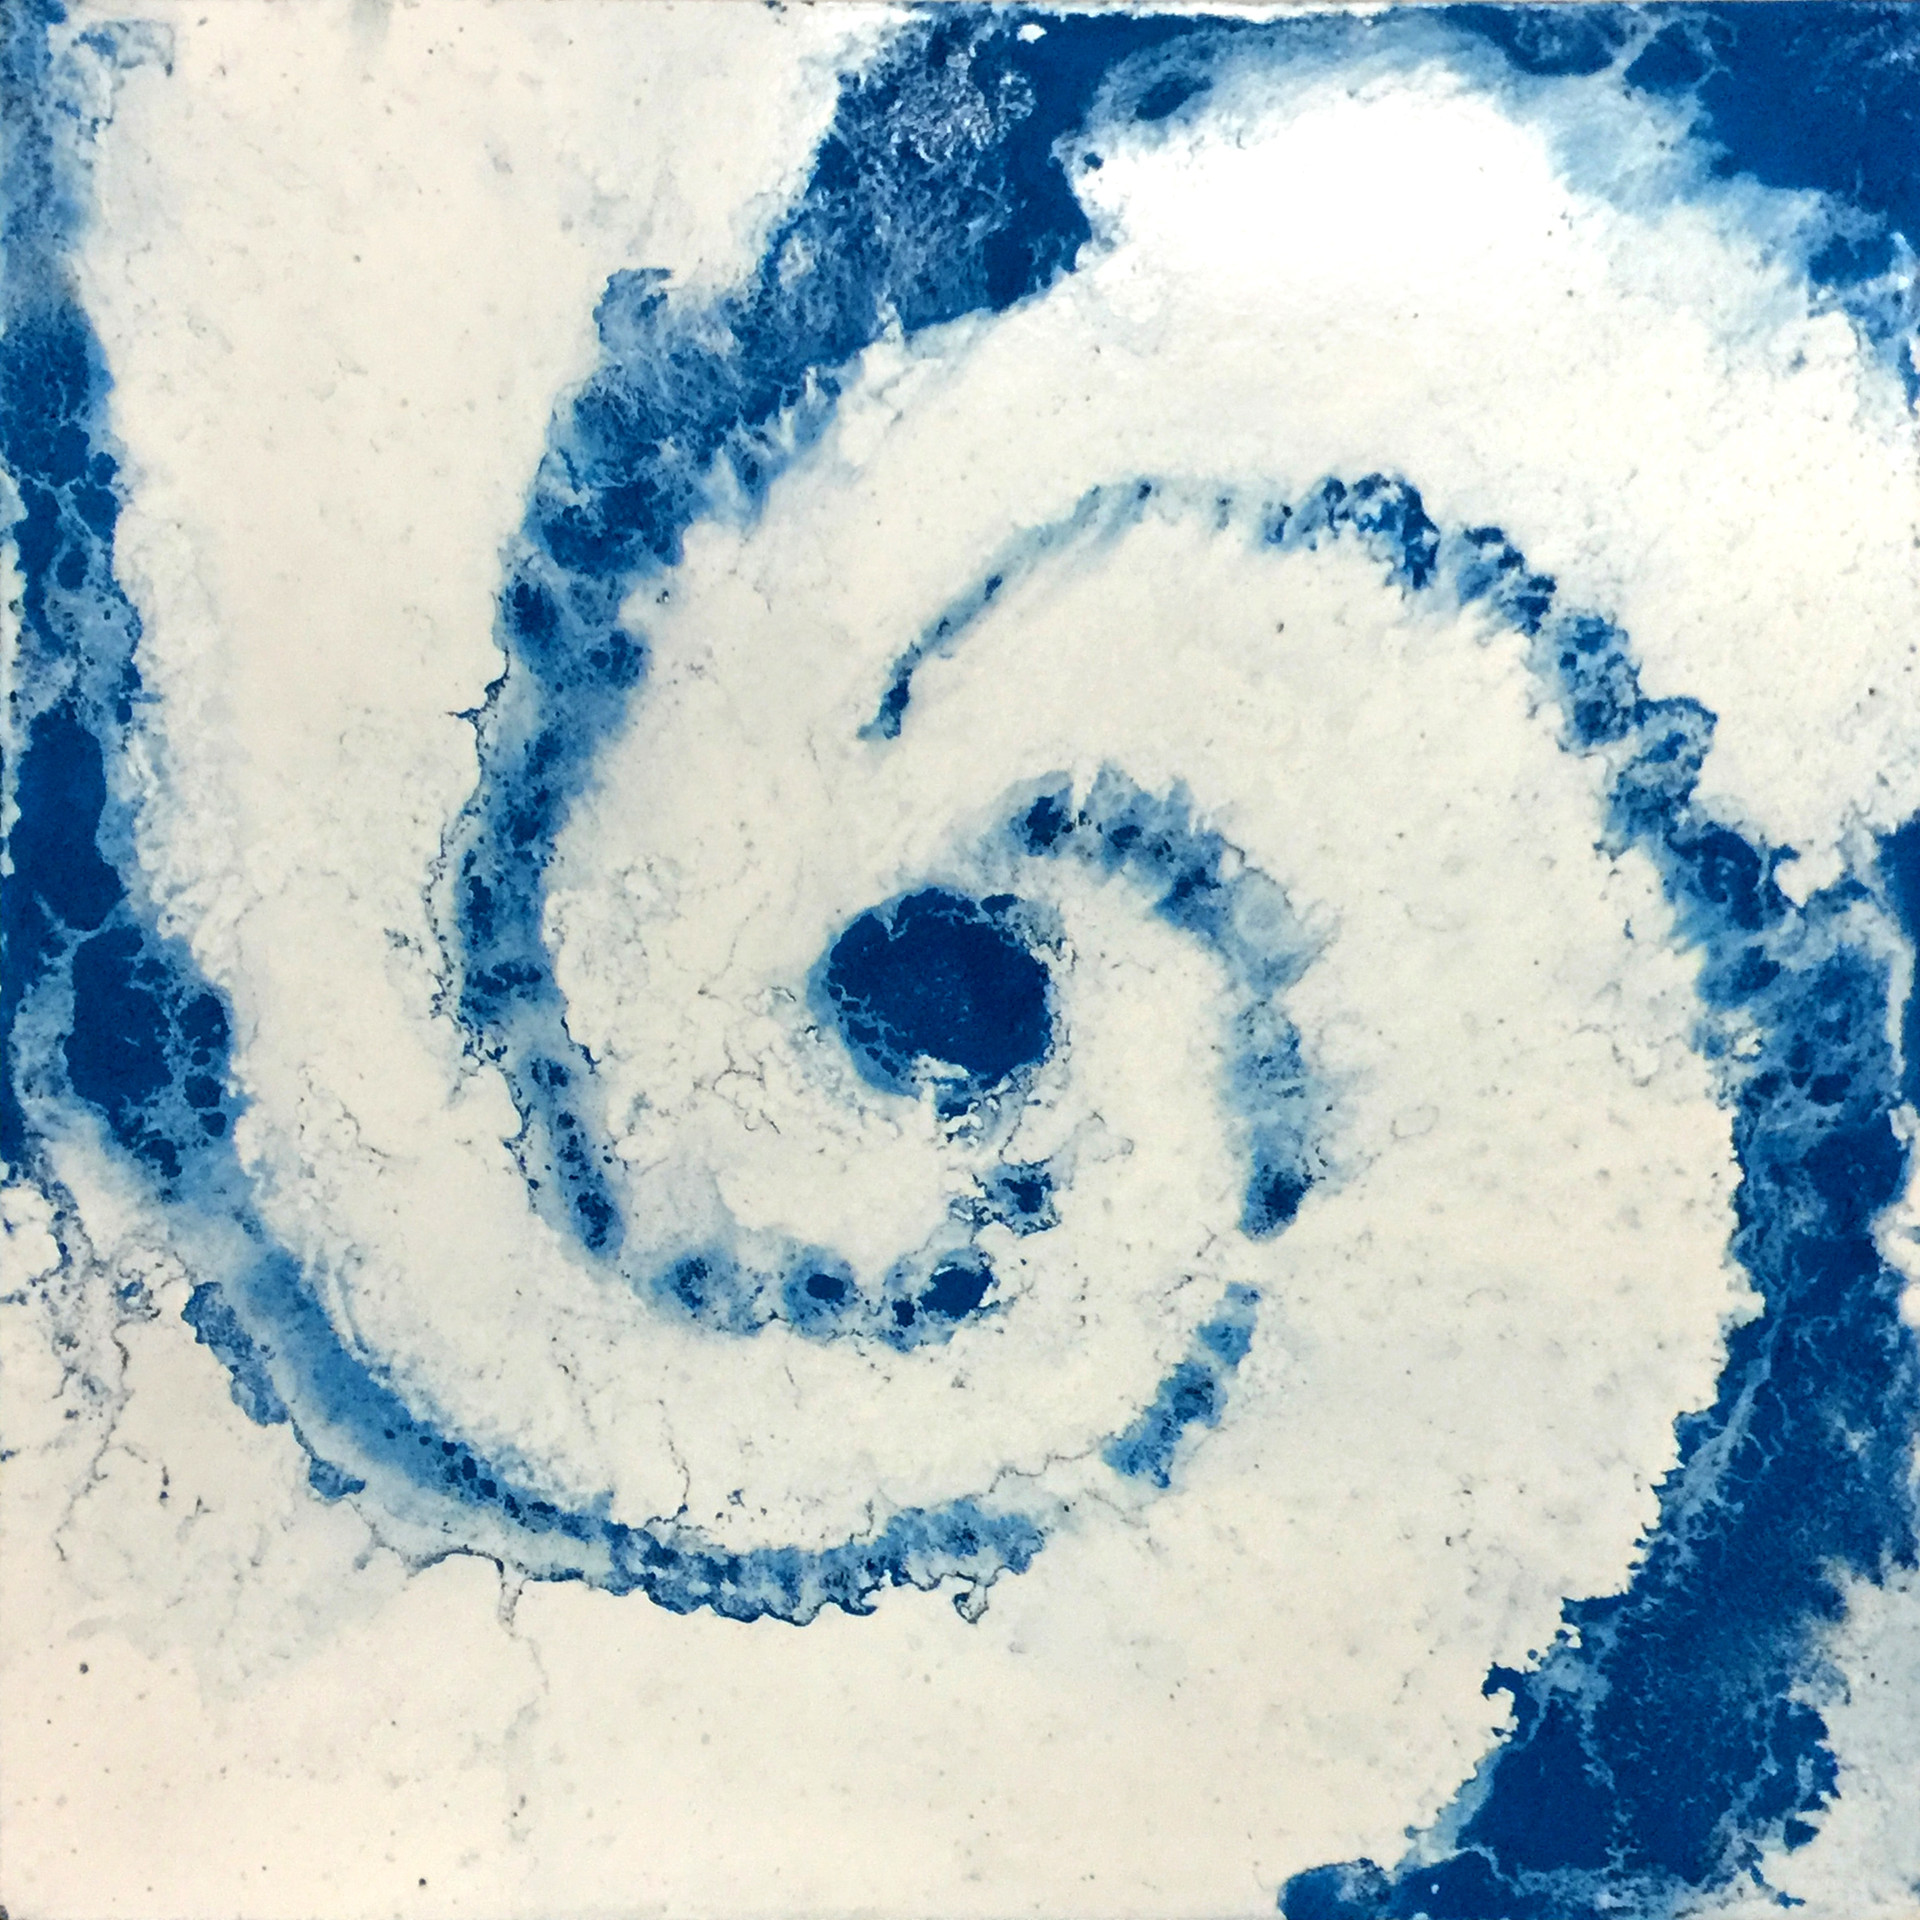 Vortex #1, Pigment on Panel, 24 x 24 inches